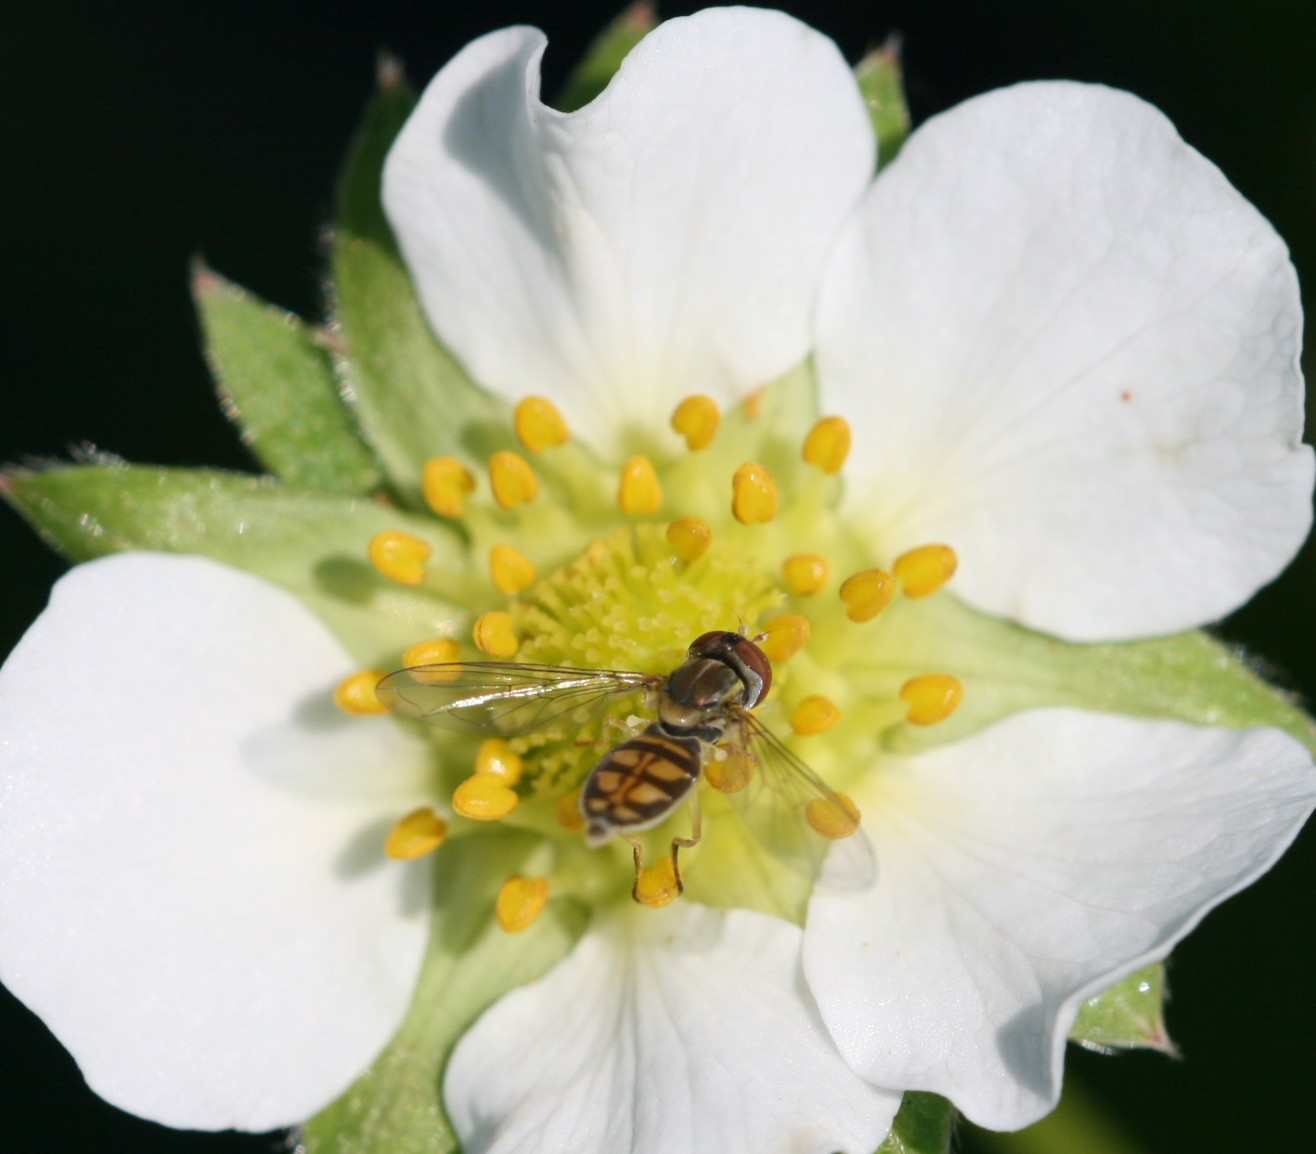 Syrphid fly adult. Photo: Jeremy Slone